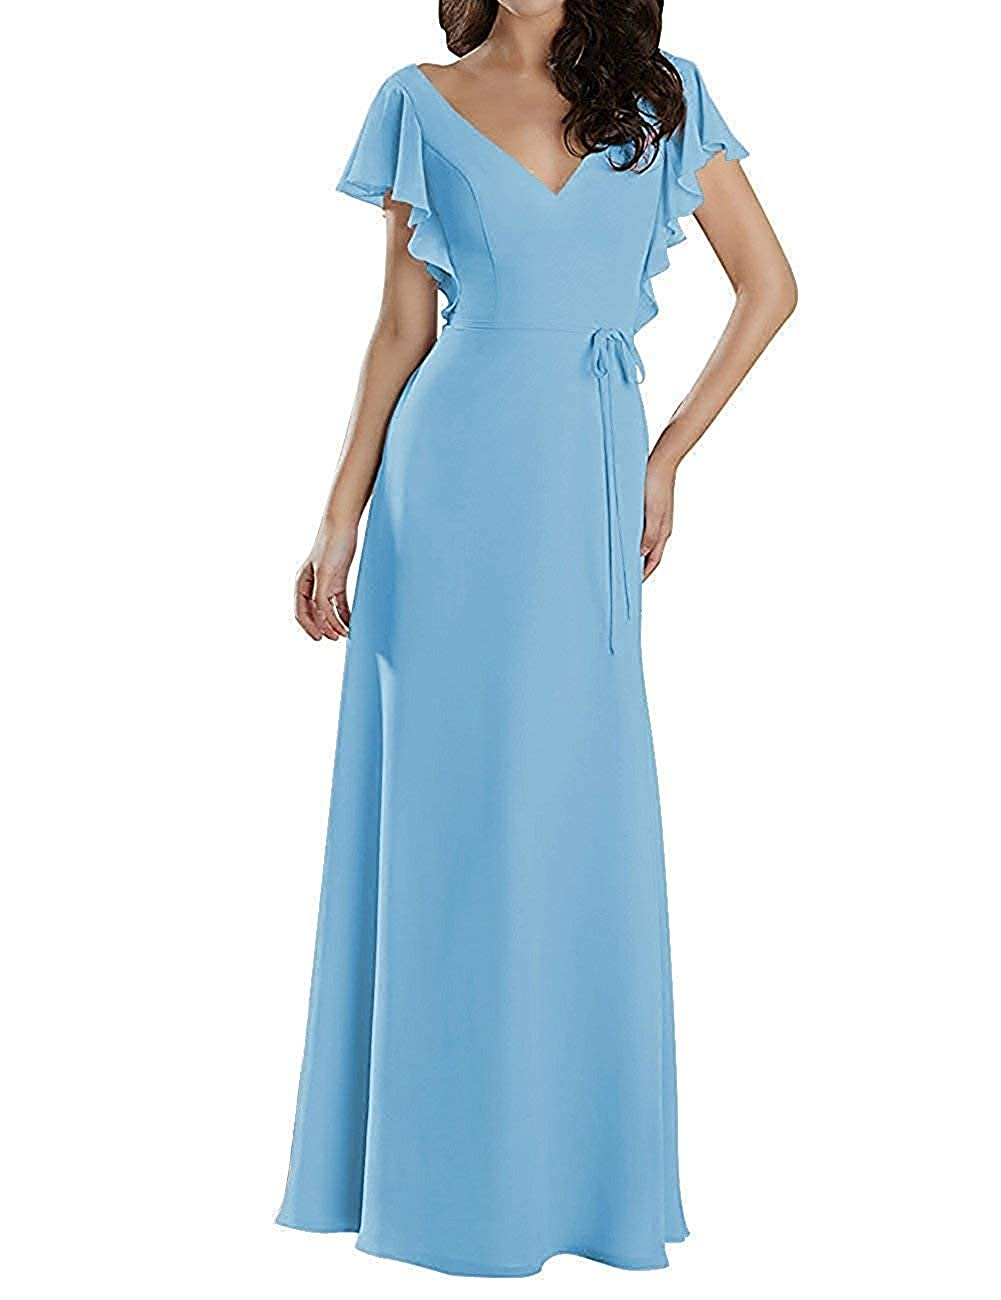 Light bluee Mother of The Bride Dresses Plus Size Long Evening Gown with Short Sleeves Mother Dress for Wedding